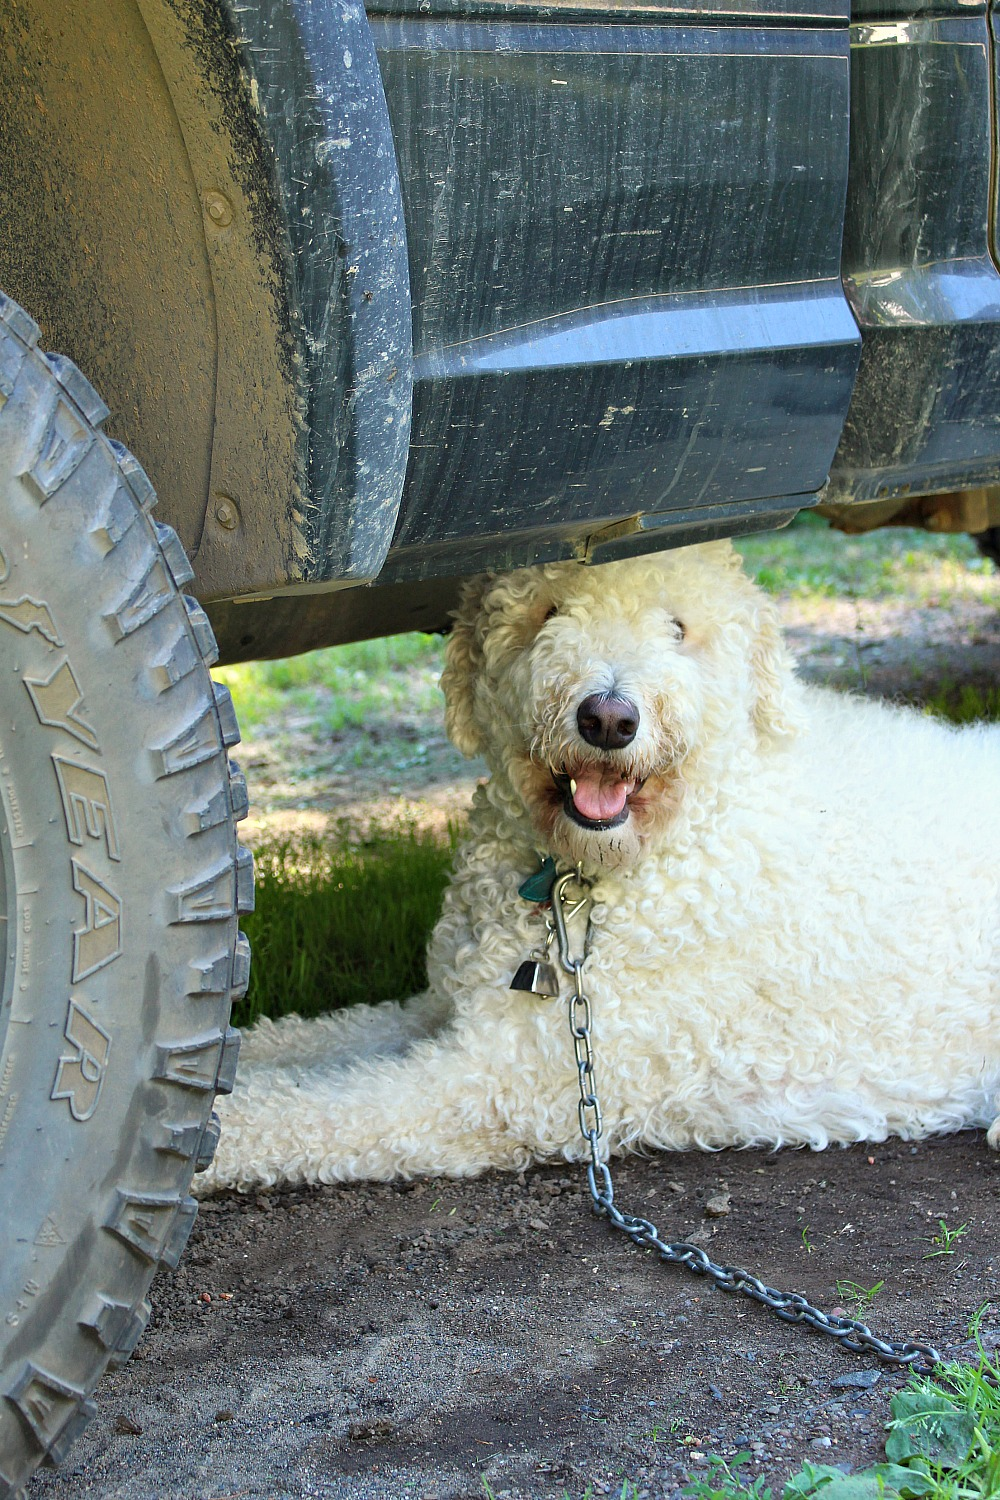 Dog Hiding Under Truck to Keep Cool  | How to Keep a Dog Cool in the Summer (www.danslelakehouse.com)